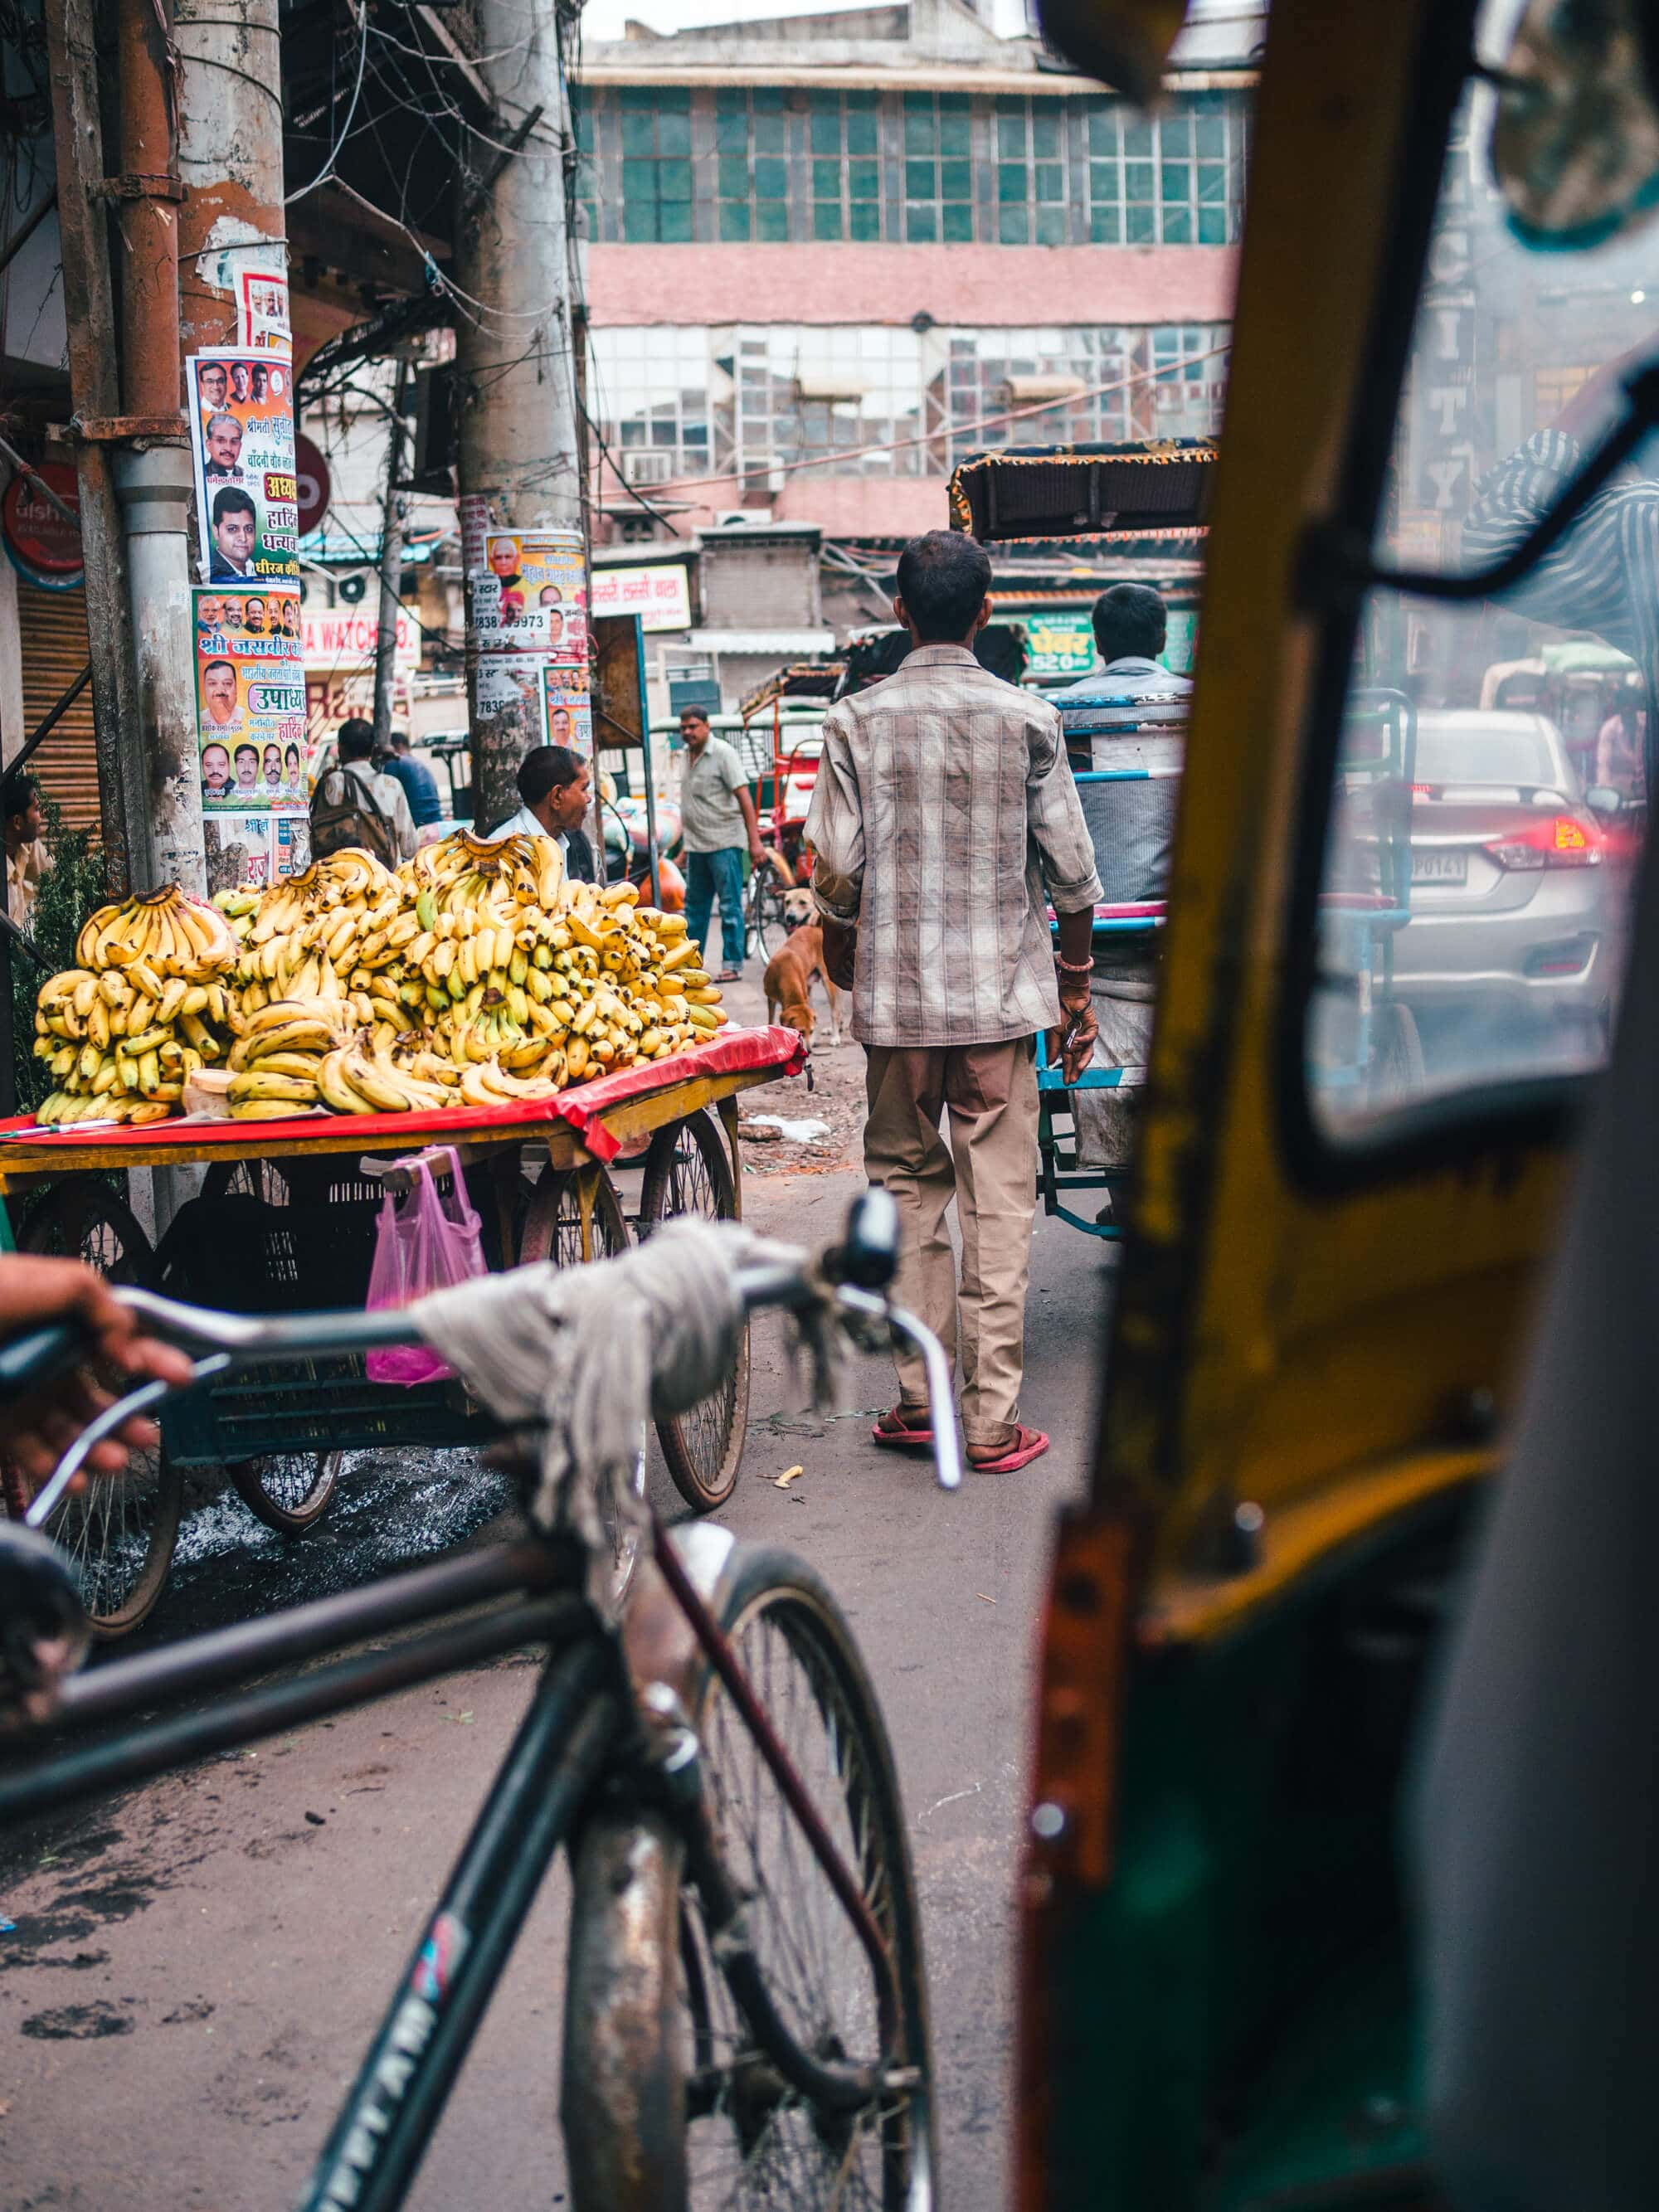 A first timer's guide to Delhi, India - Crazy traffic of Old Delhi